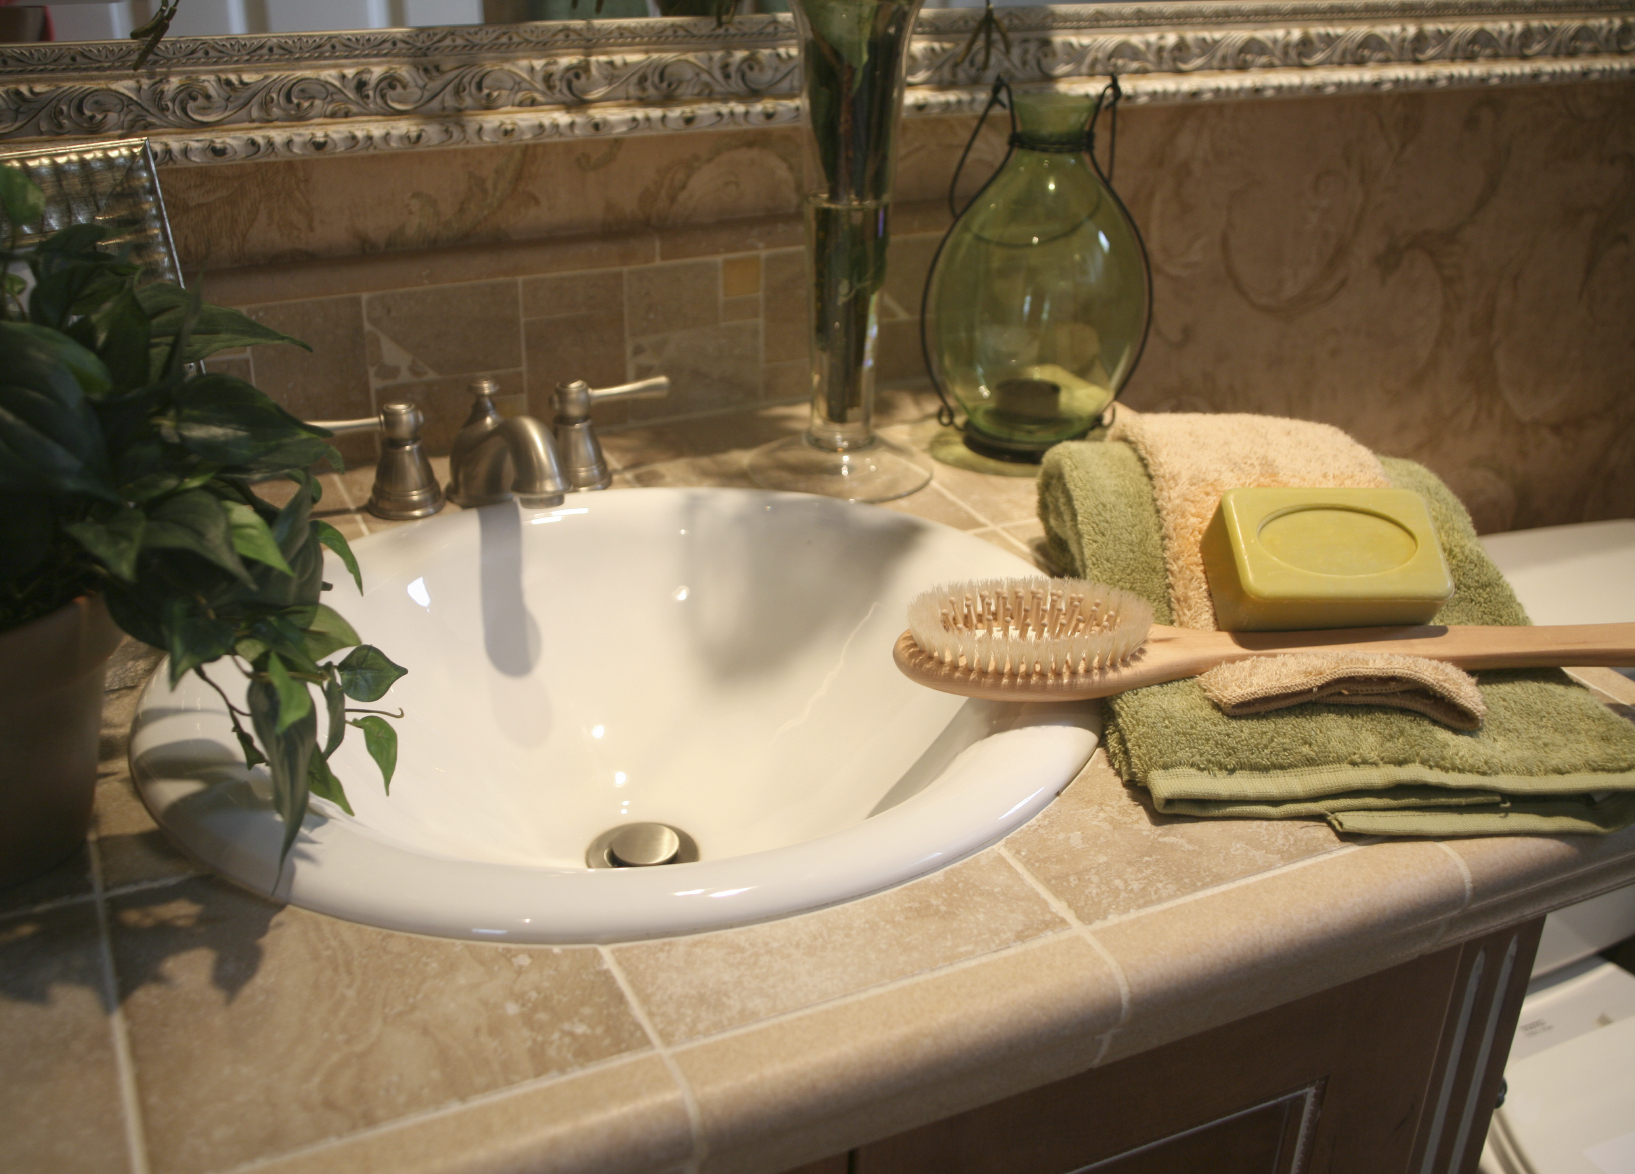 Bathroom Makeover Ideas Budget Layout Color - Small bathroom color ideas on a budget